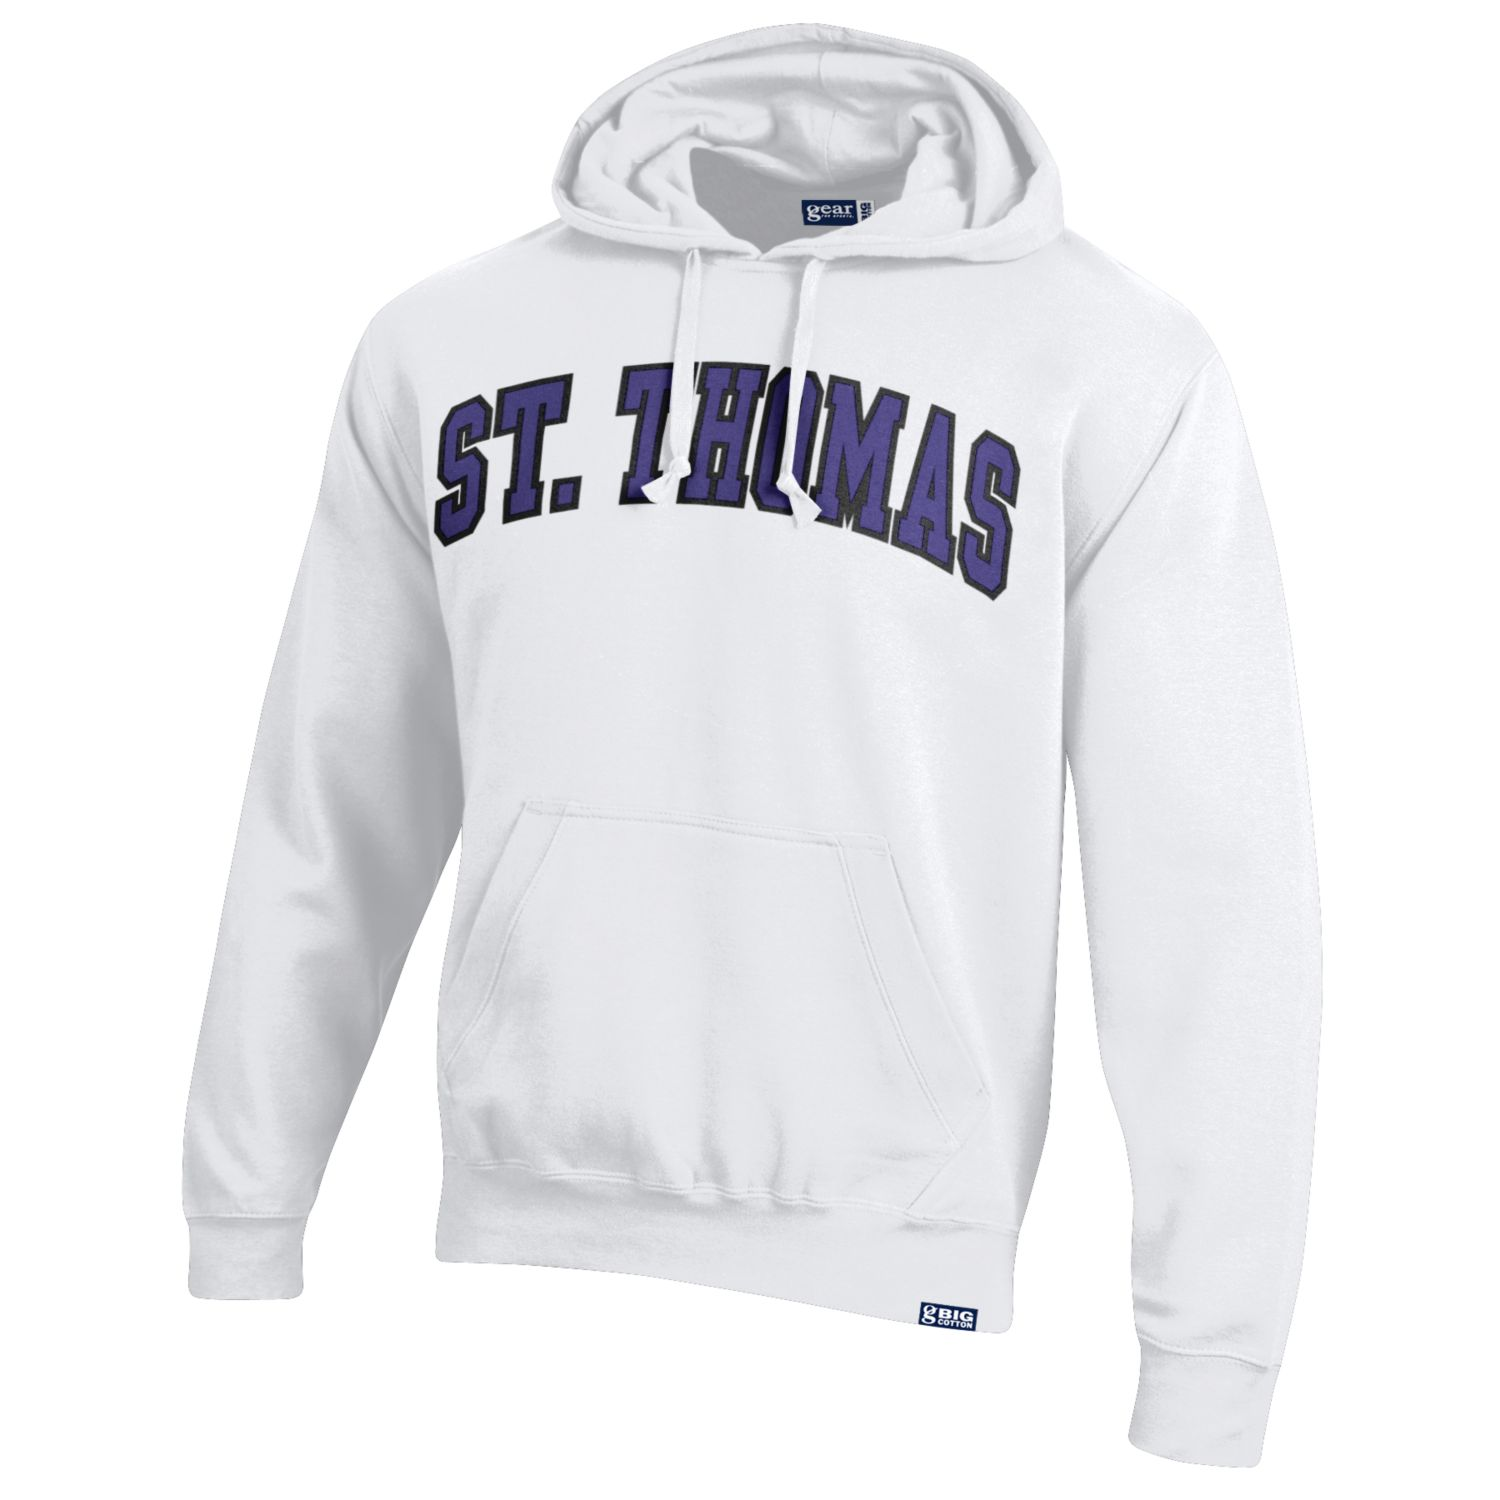 photo of a white sweatshirt  that says St. Thomas in large purple letters.